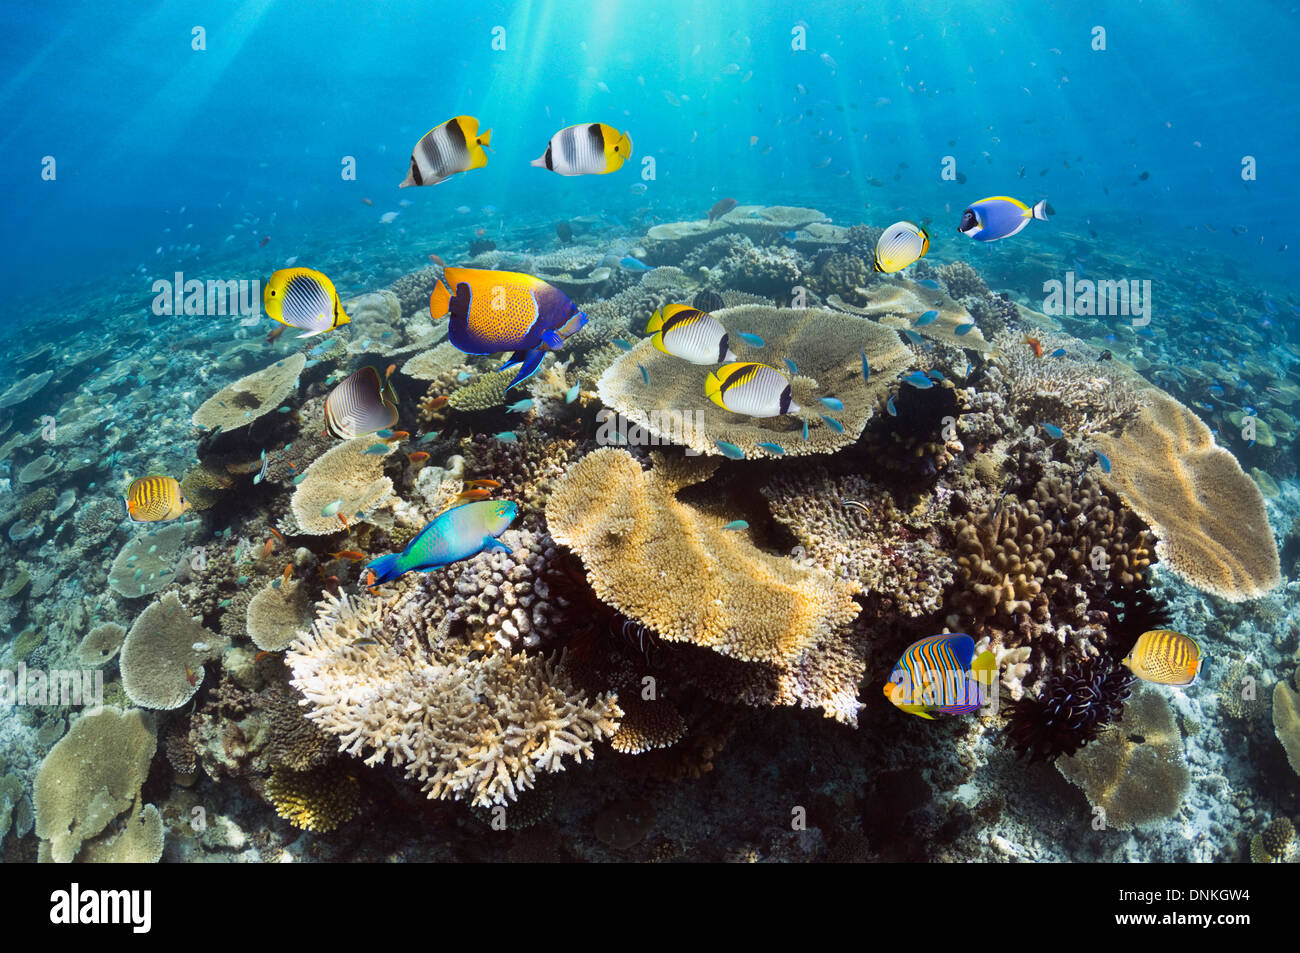 Marvelous Coral Reef With Table Corals (Acropora Sp.) And Tropical Reef Fish. Maldives